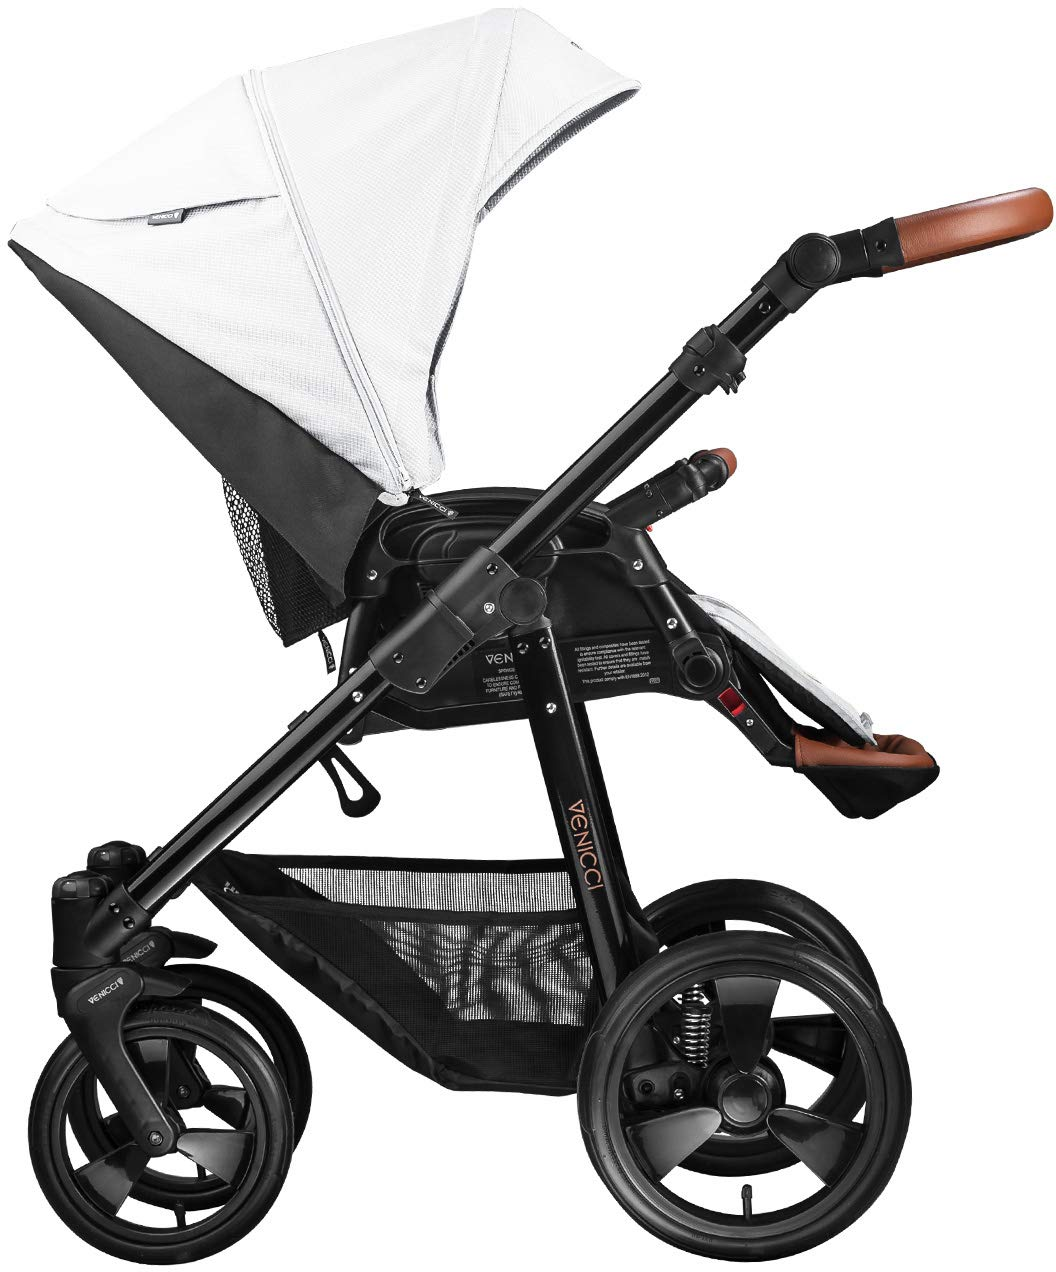 Venicci Gusto 2-in-1 - Ecru Travel System Venicci Also includes: Changing bag, Apron, Rain cover, Mosquito Net, Cup holder Carrycot: L 102cm W 61cm H 112 cm Age suitability: From birth to 6 months Seat unit: L 95cm W 61cm H 112cm Age suitability: From 7 to 36 months 3